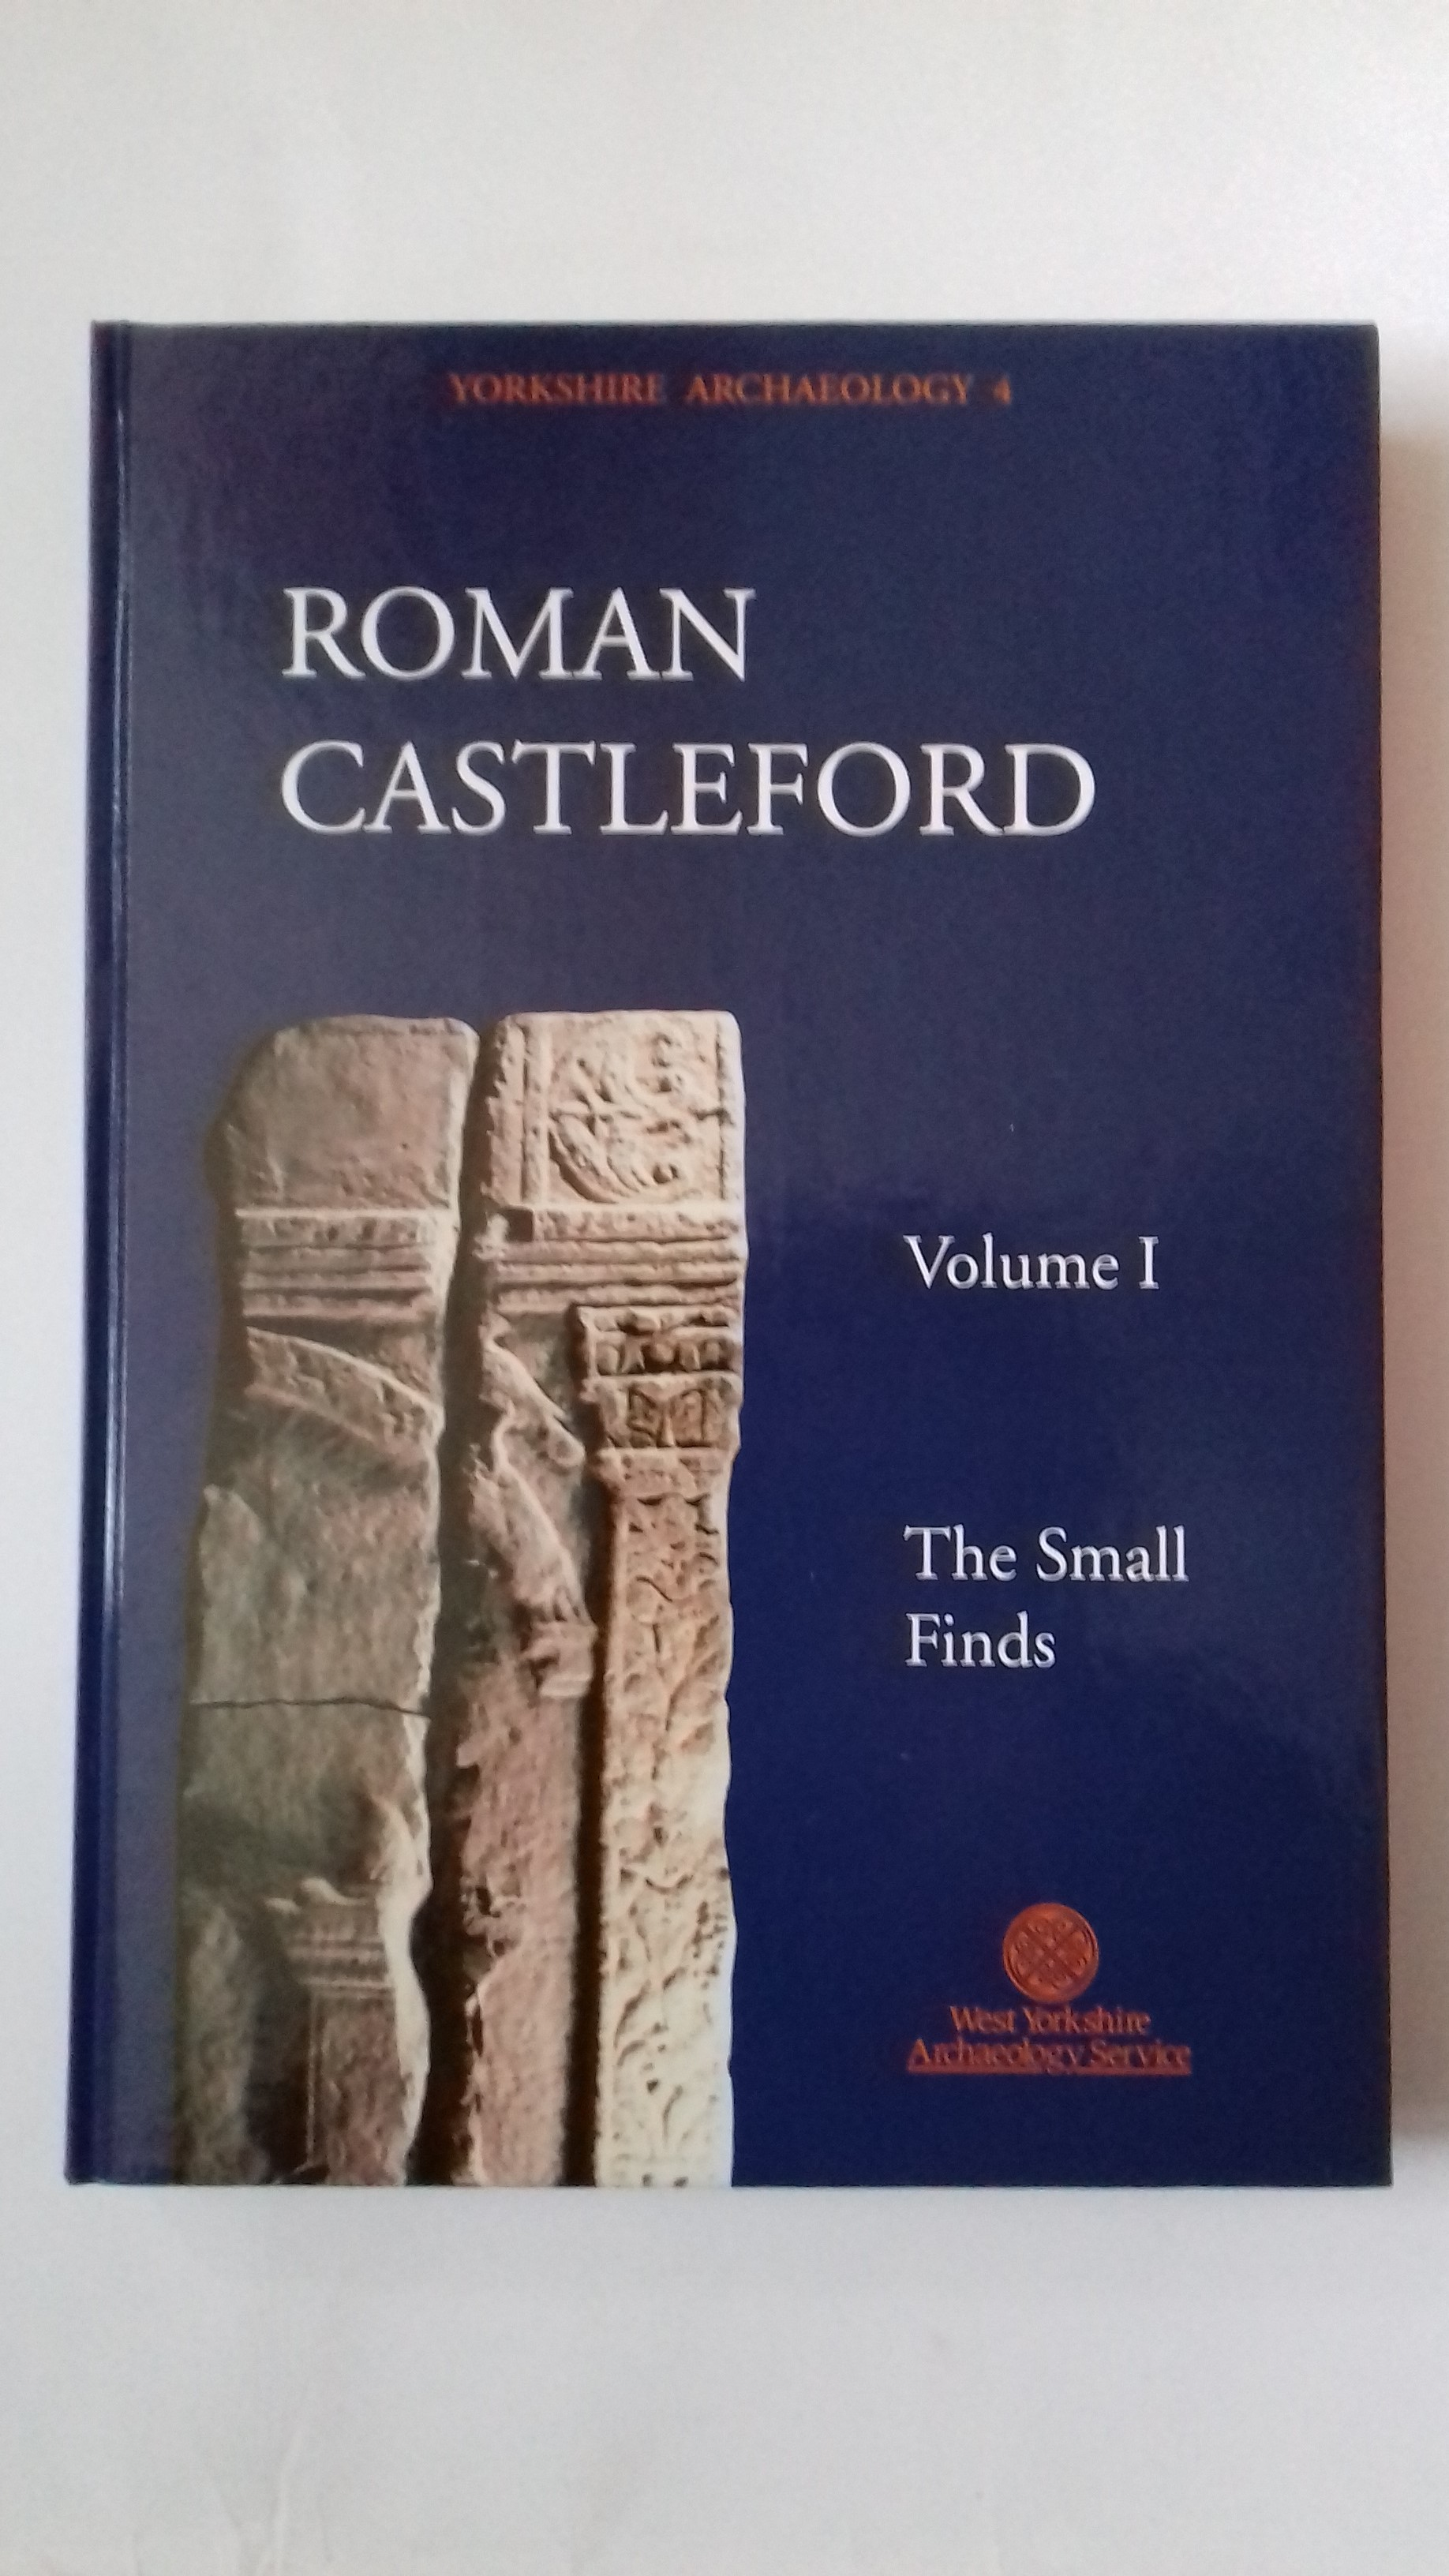 Roman Castleford Excavations 1974-85, Volume I: The Small Finds  :Yorkshire Archaeology 4, Cool, H. E. M. ;Philo, C. (eds)